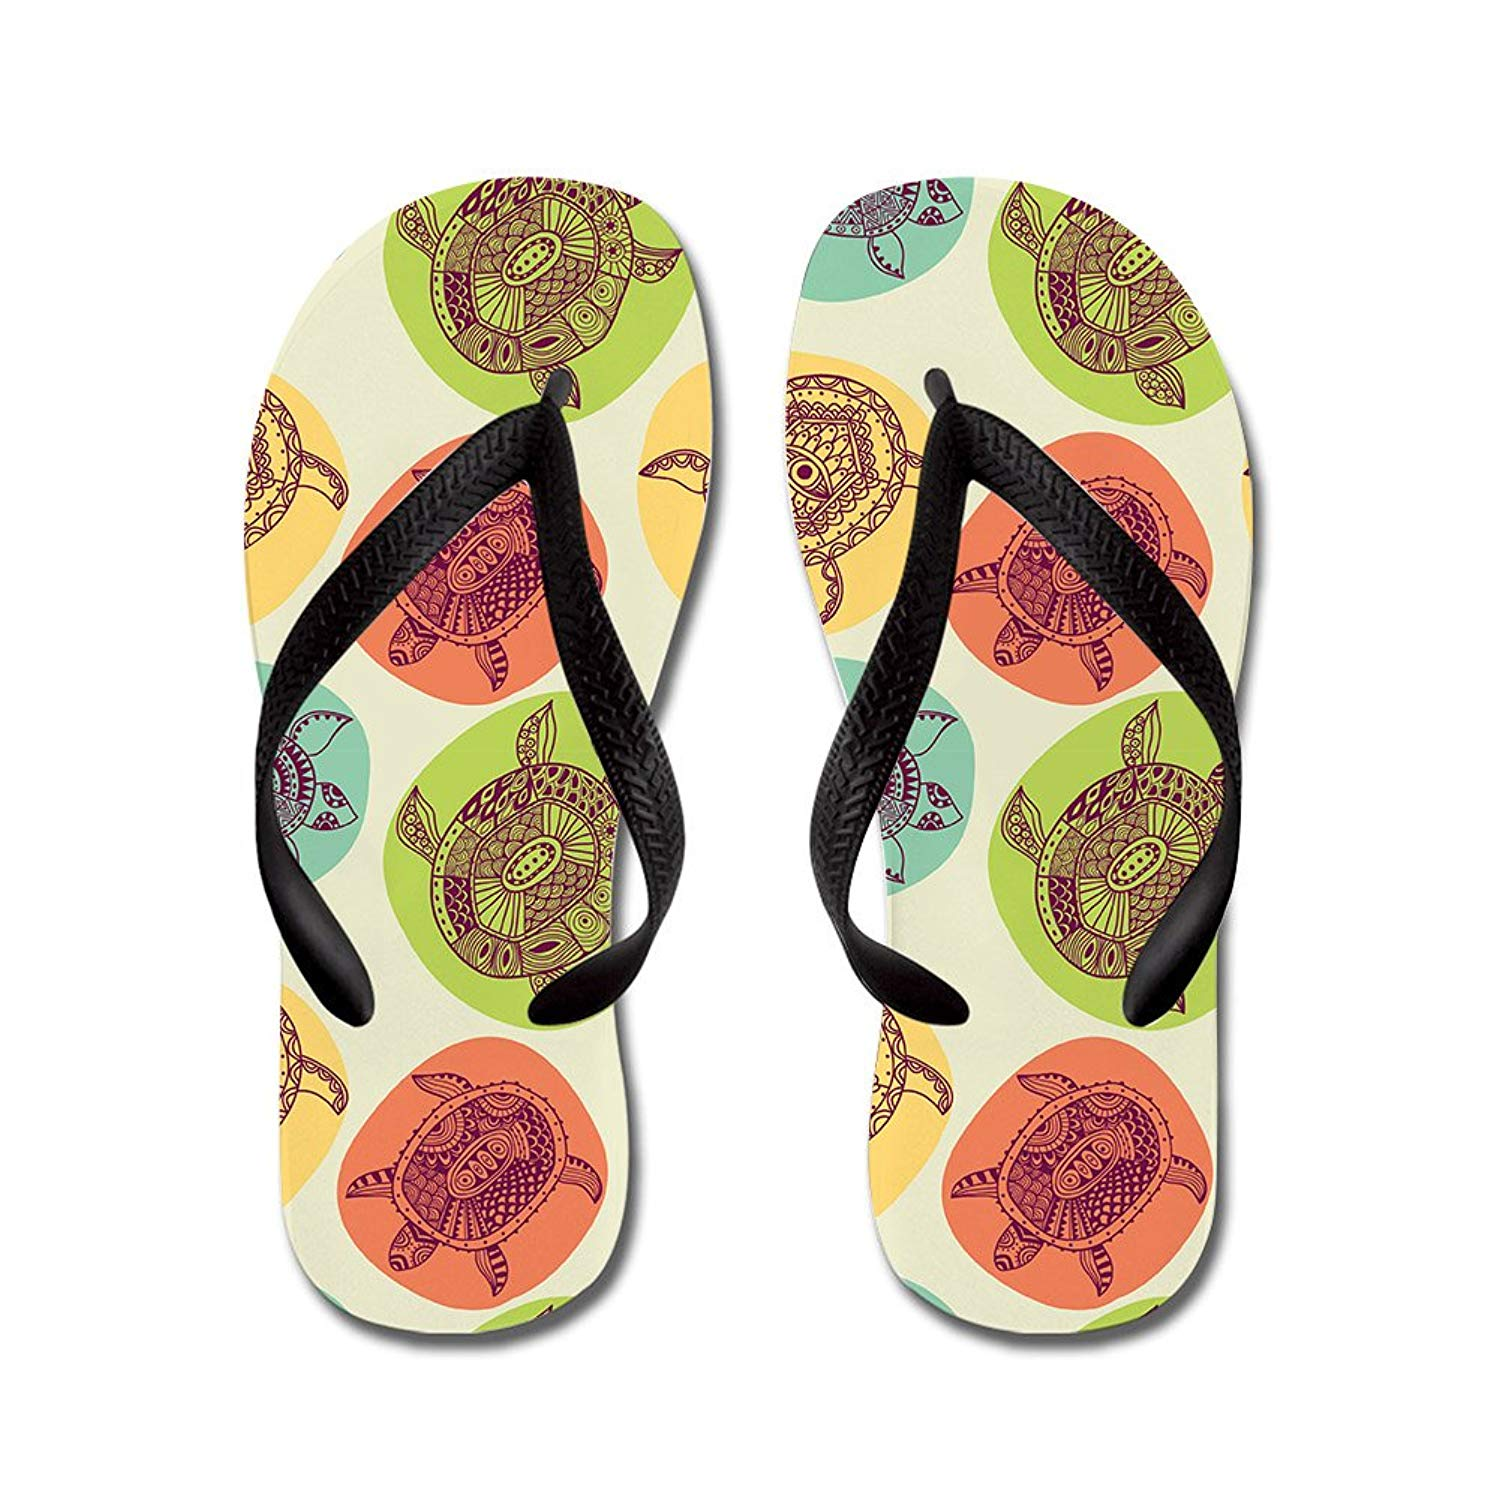 Lplpol Cute Paw Prints Flip Flops for Kids and Adult Unisex Beach Sandals Pool Shoes Party Slippers